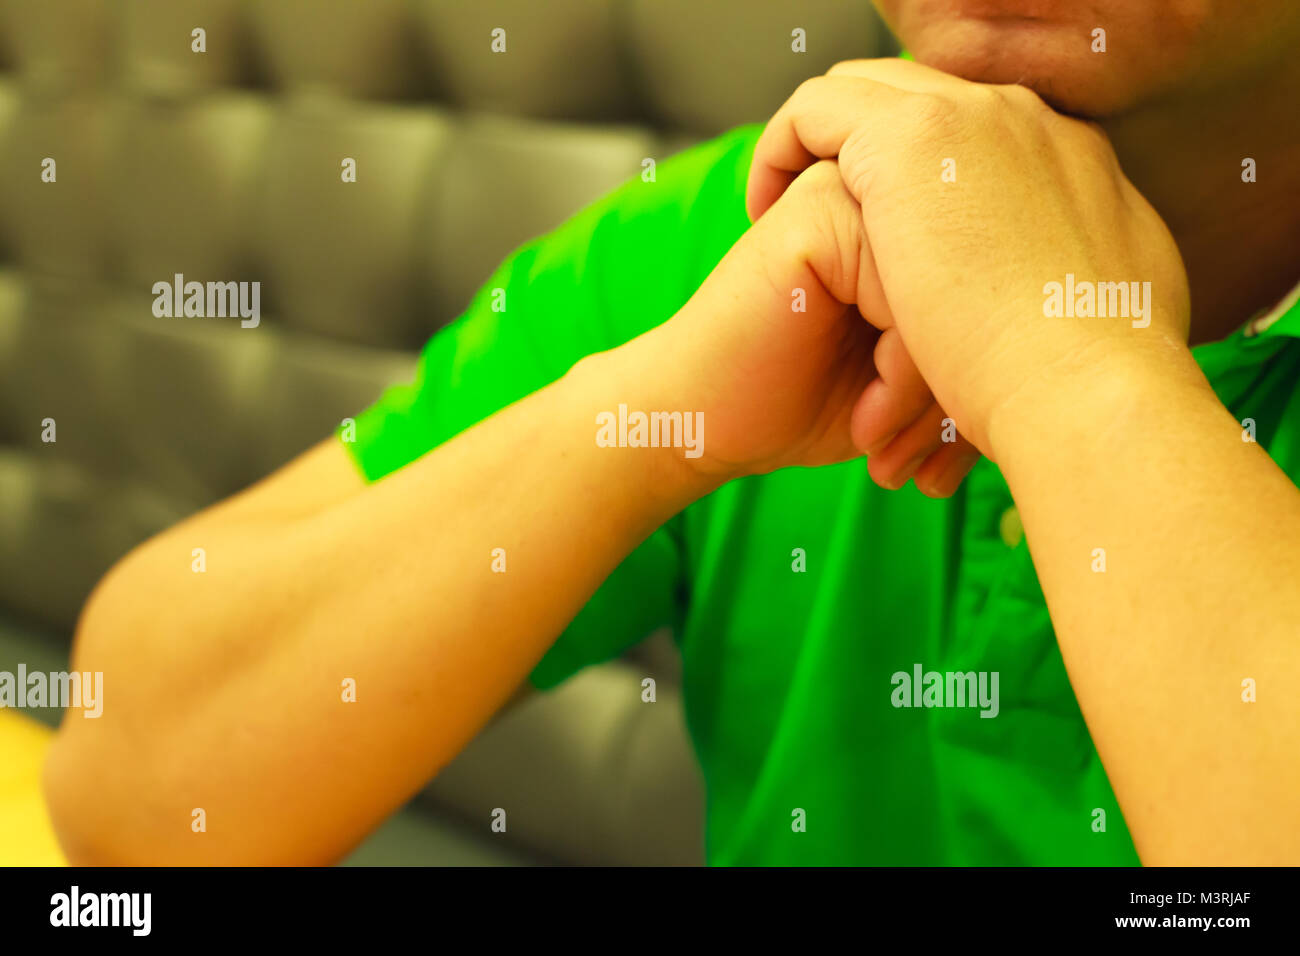 Man's Hands clenched in raised position, body language concept. - Stock Image